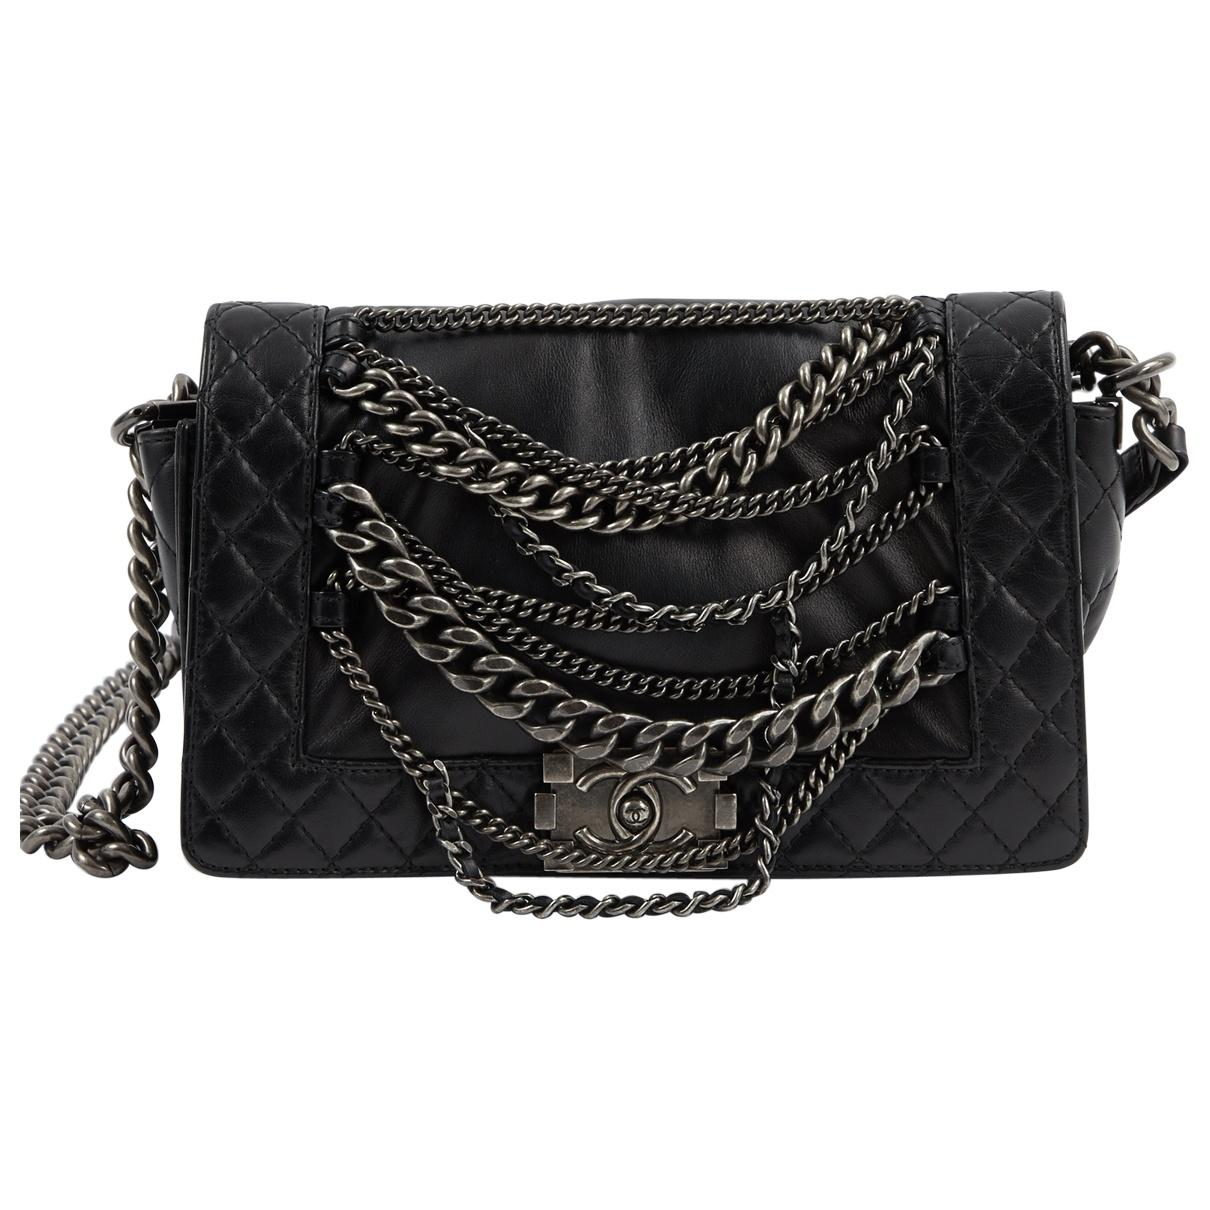 3a00be92677c Chanel. Women's Black Boy Leather Crossbody Bag. $6,348 From Vestiaire  Collective